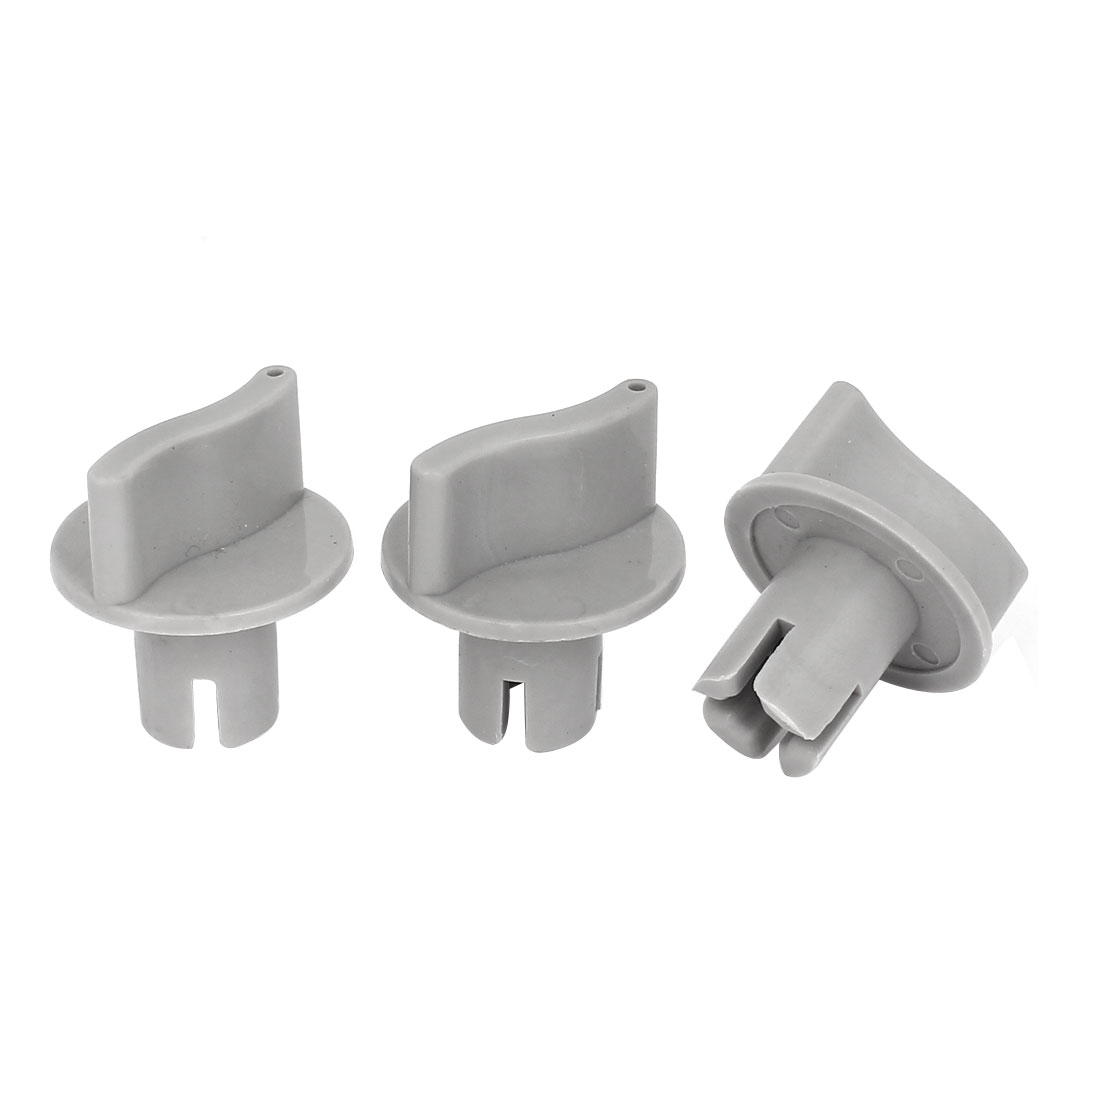 Washing Machine Part 6mm ID Cross Slot Hard Plastic Timer Turning Knob Gray 3pcs